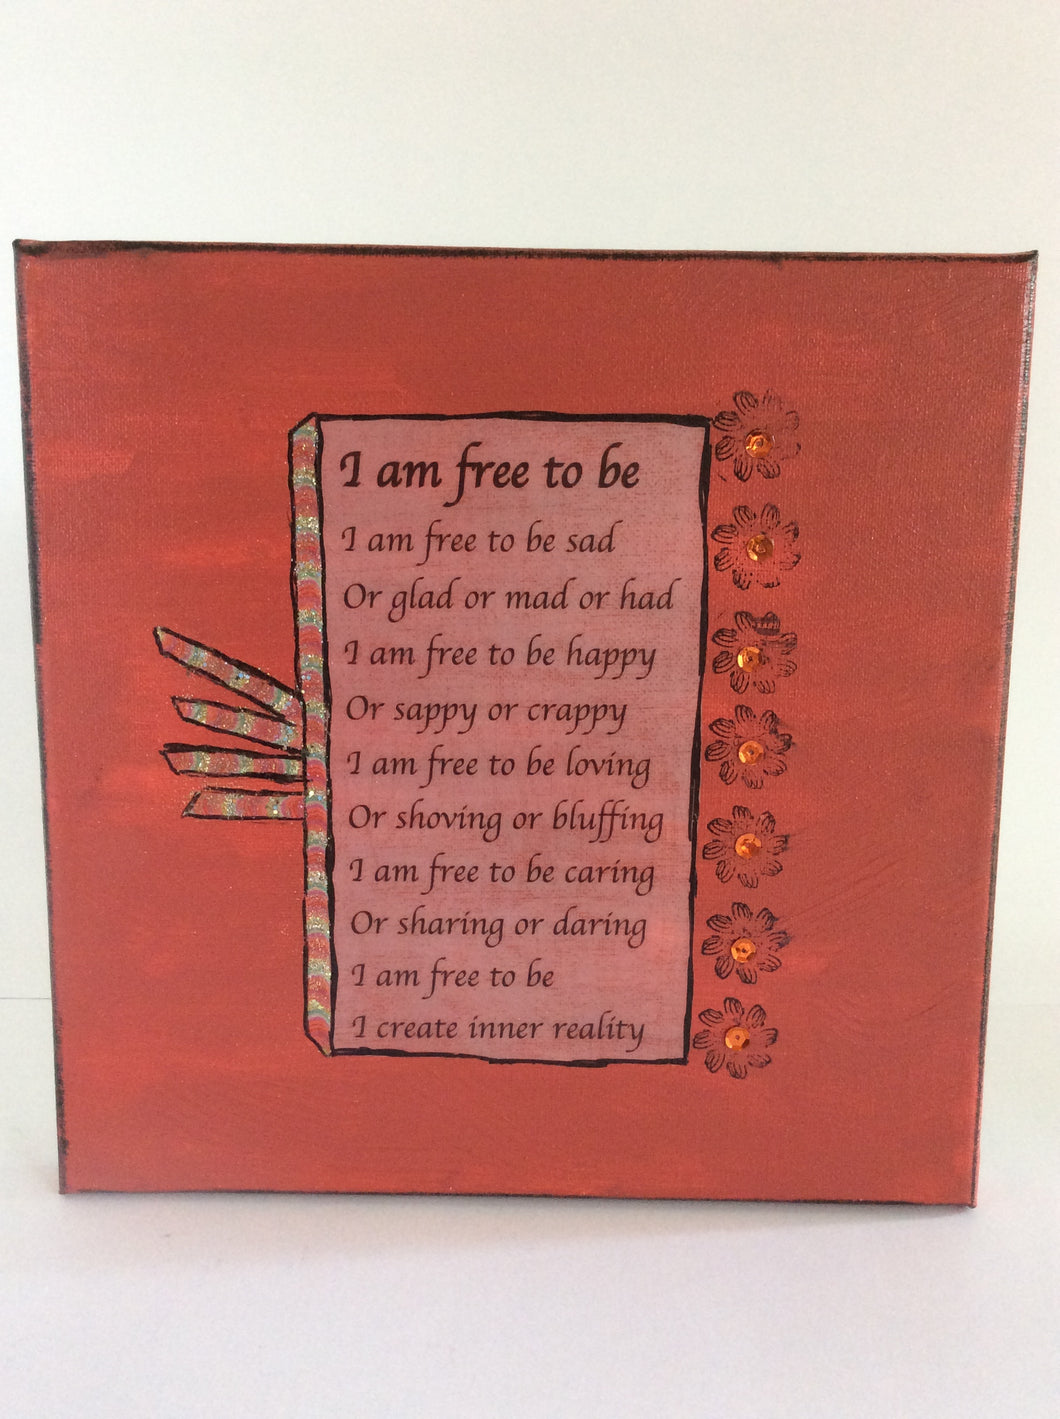 Free to Be is an original poem on canvas from poempieces.com in tangerine